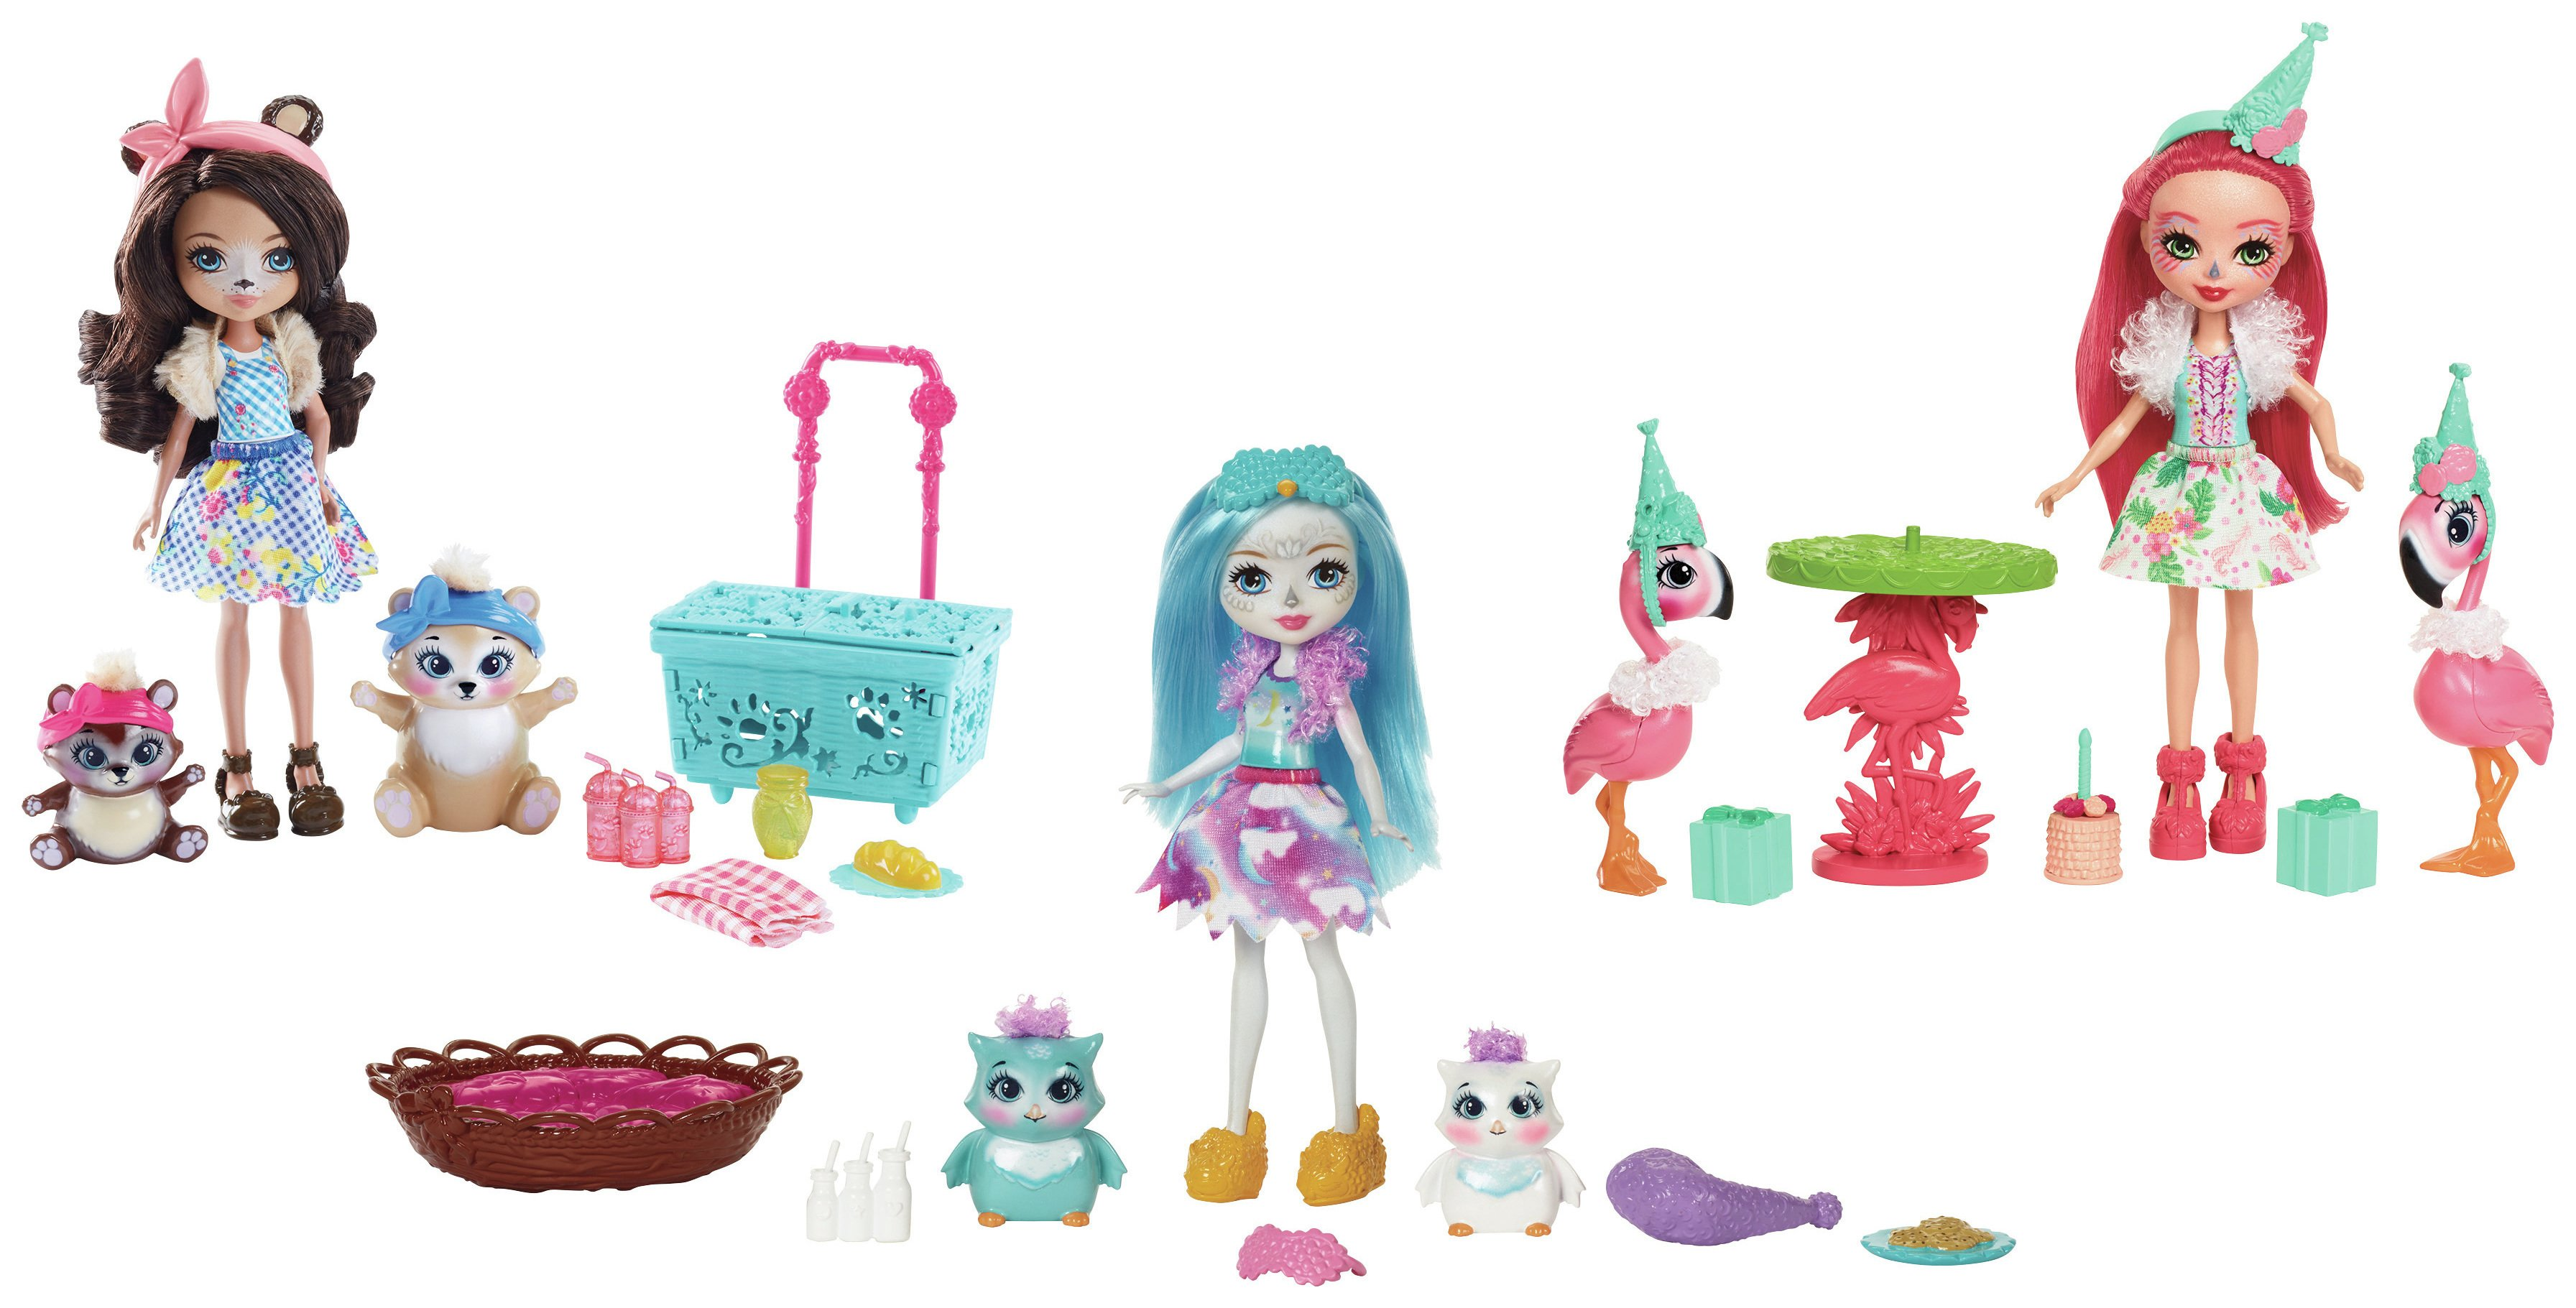 Enchantimals Doll Theme Sets Assortment